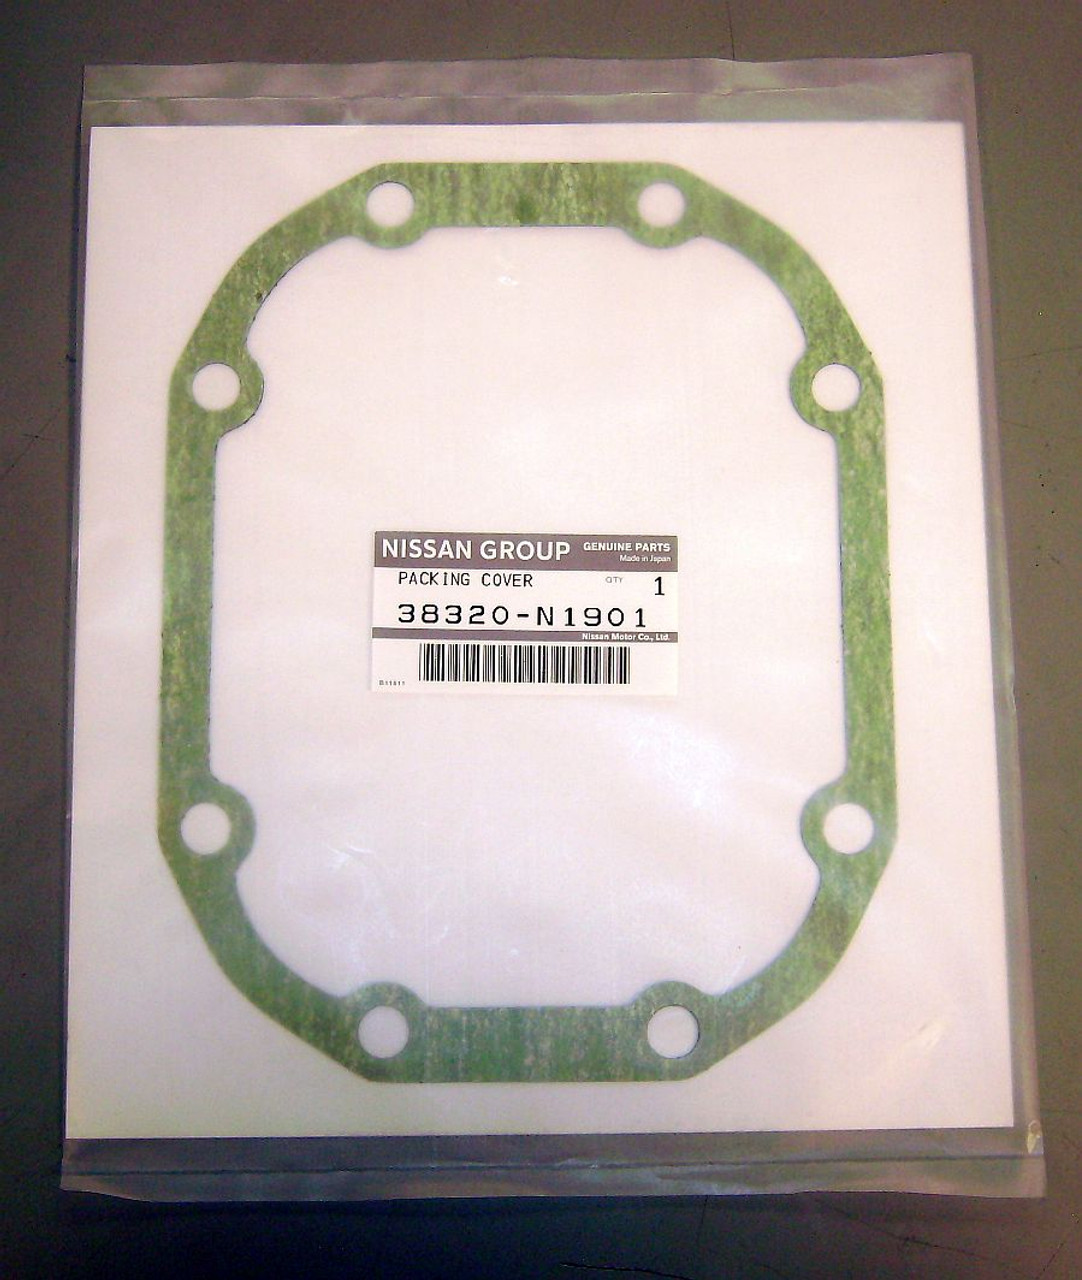 R160 Differential Rear Cover Gasket Fits Nissan Datsun 510 610 & Subaru 38320-N1901